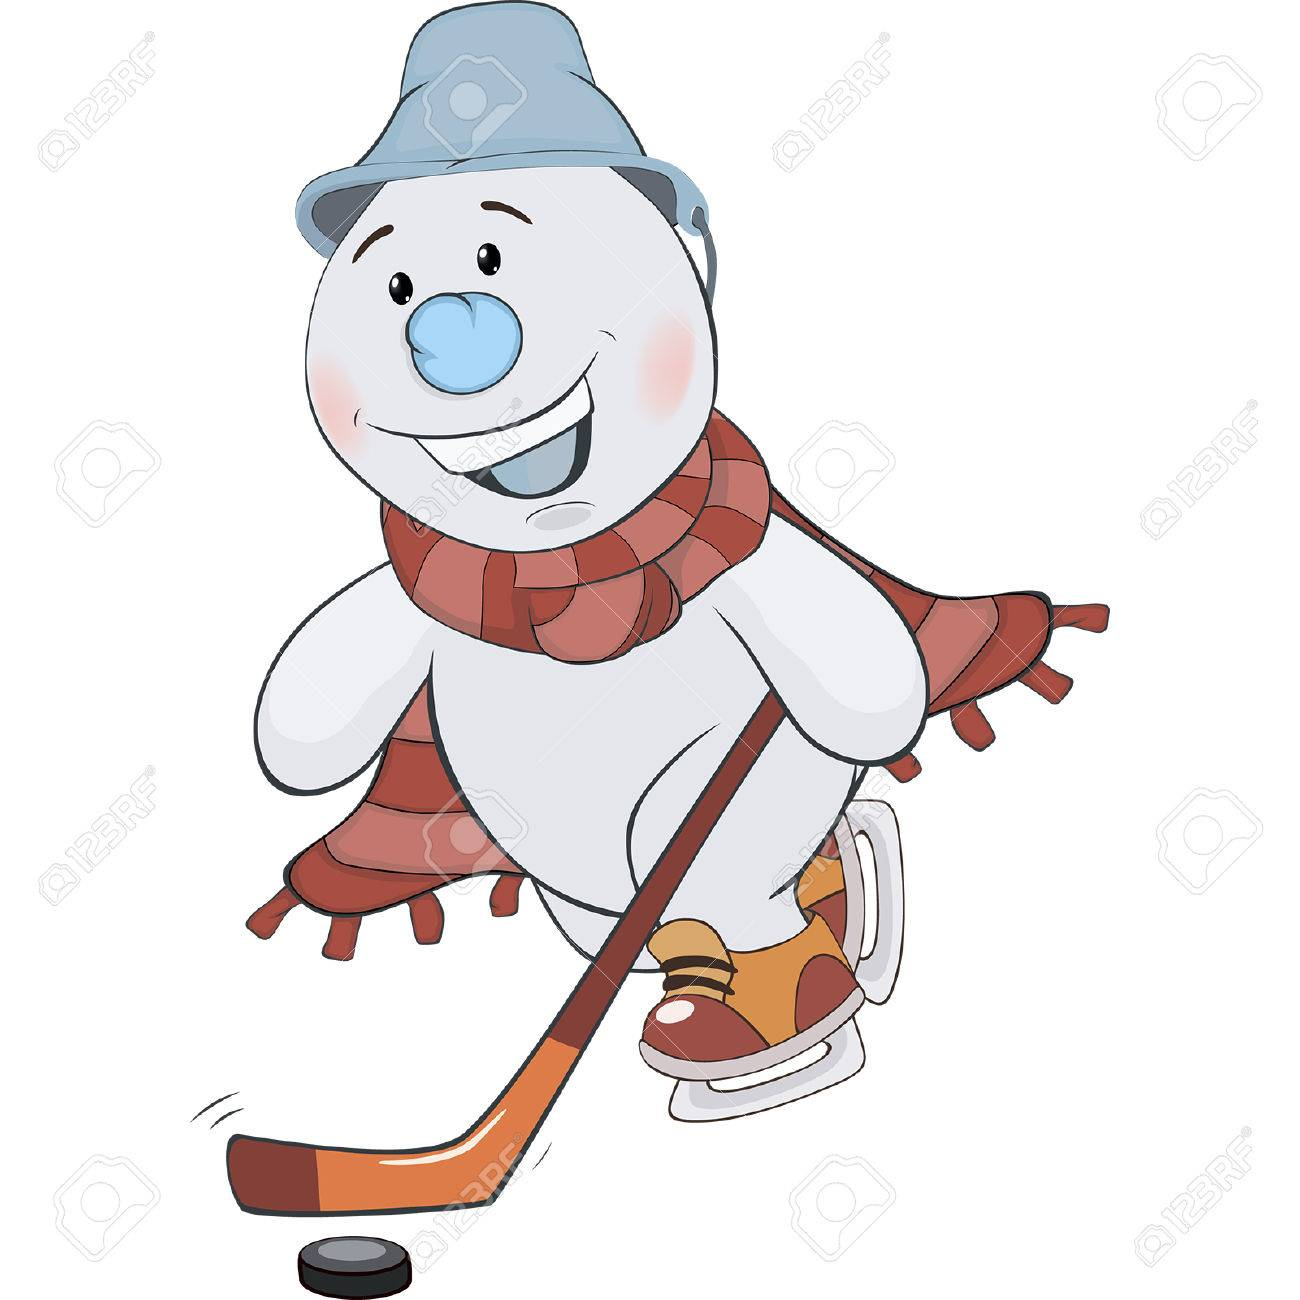 A Christmas snowman hockey player. Cartoon.